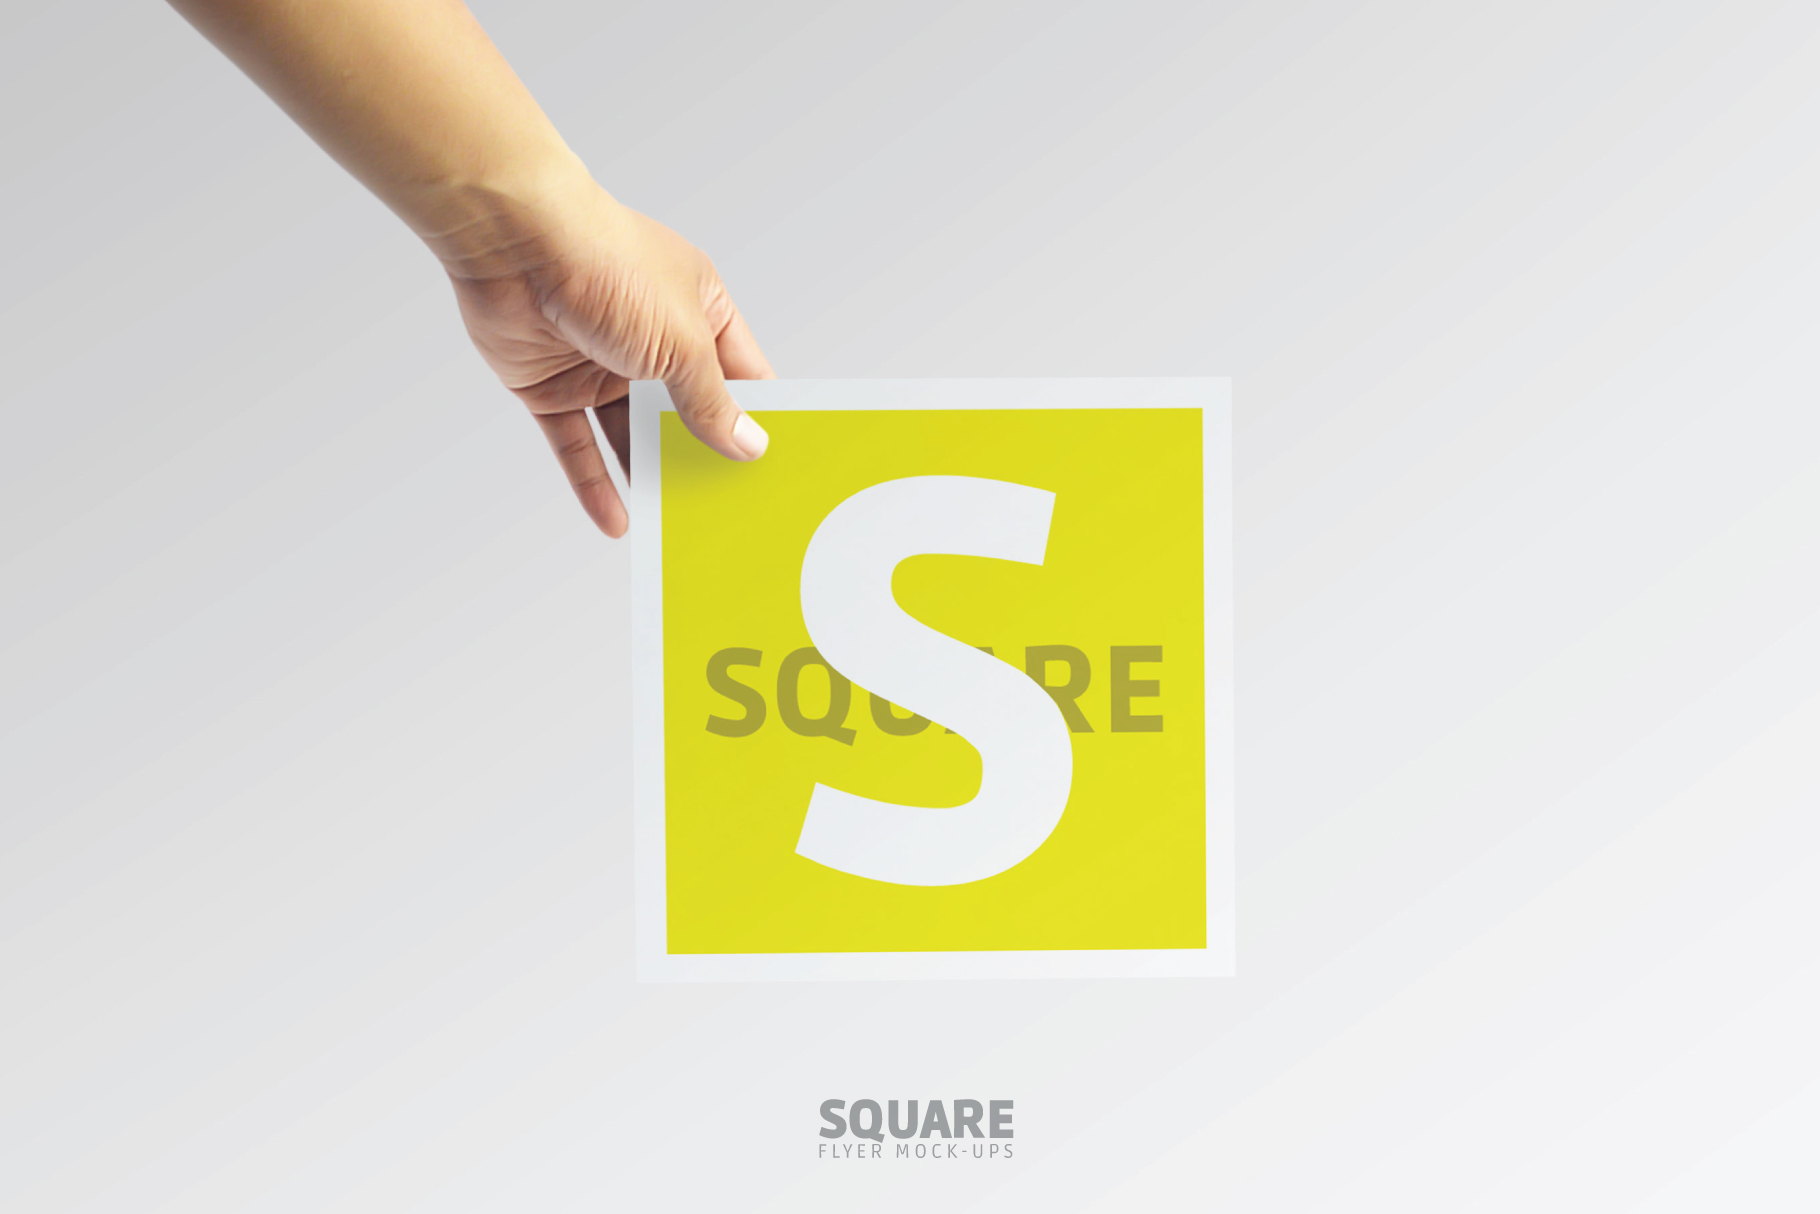 Square Flyer Mock-Up example image 6